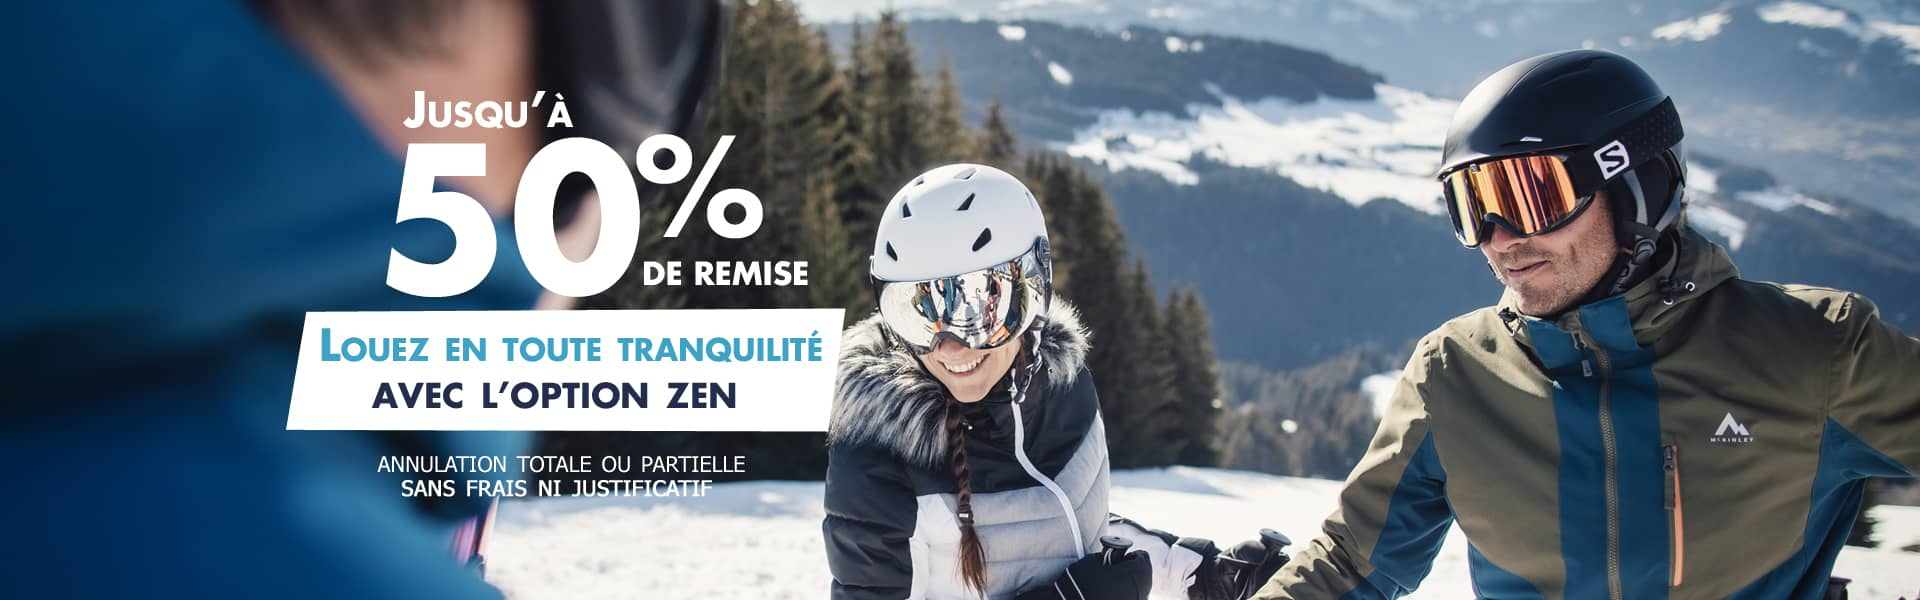 Location ski Intersport Champagny en Vanoise